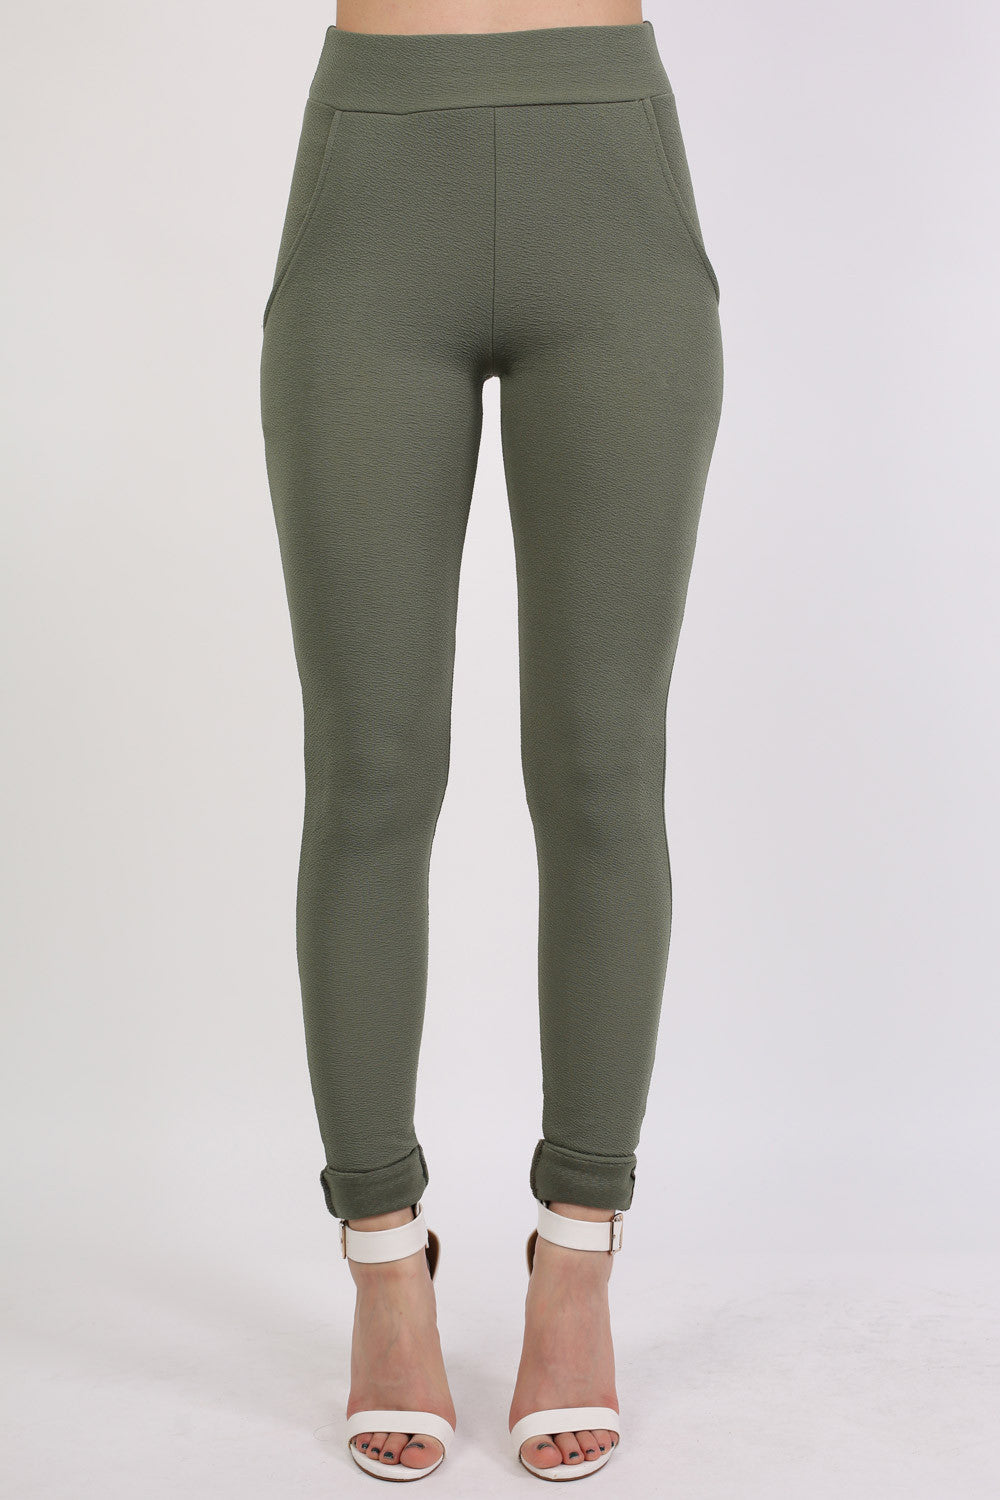 Textured Cigarette Trousers in Khaki Green 1